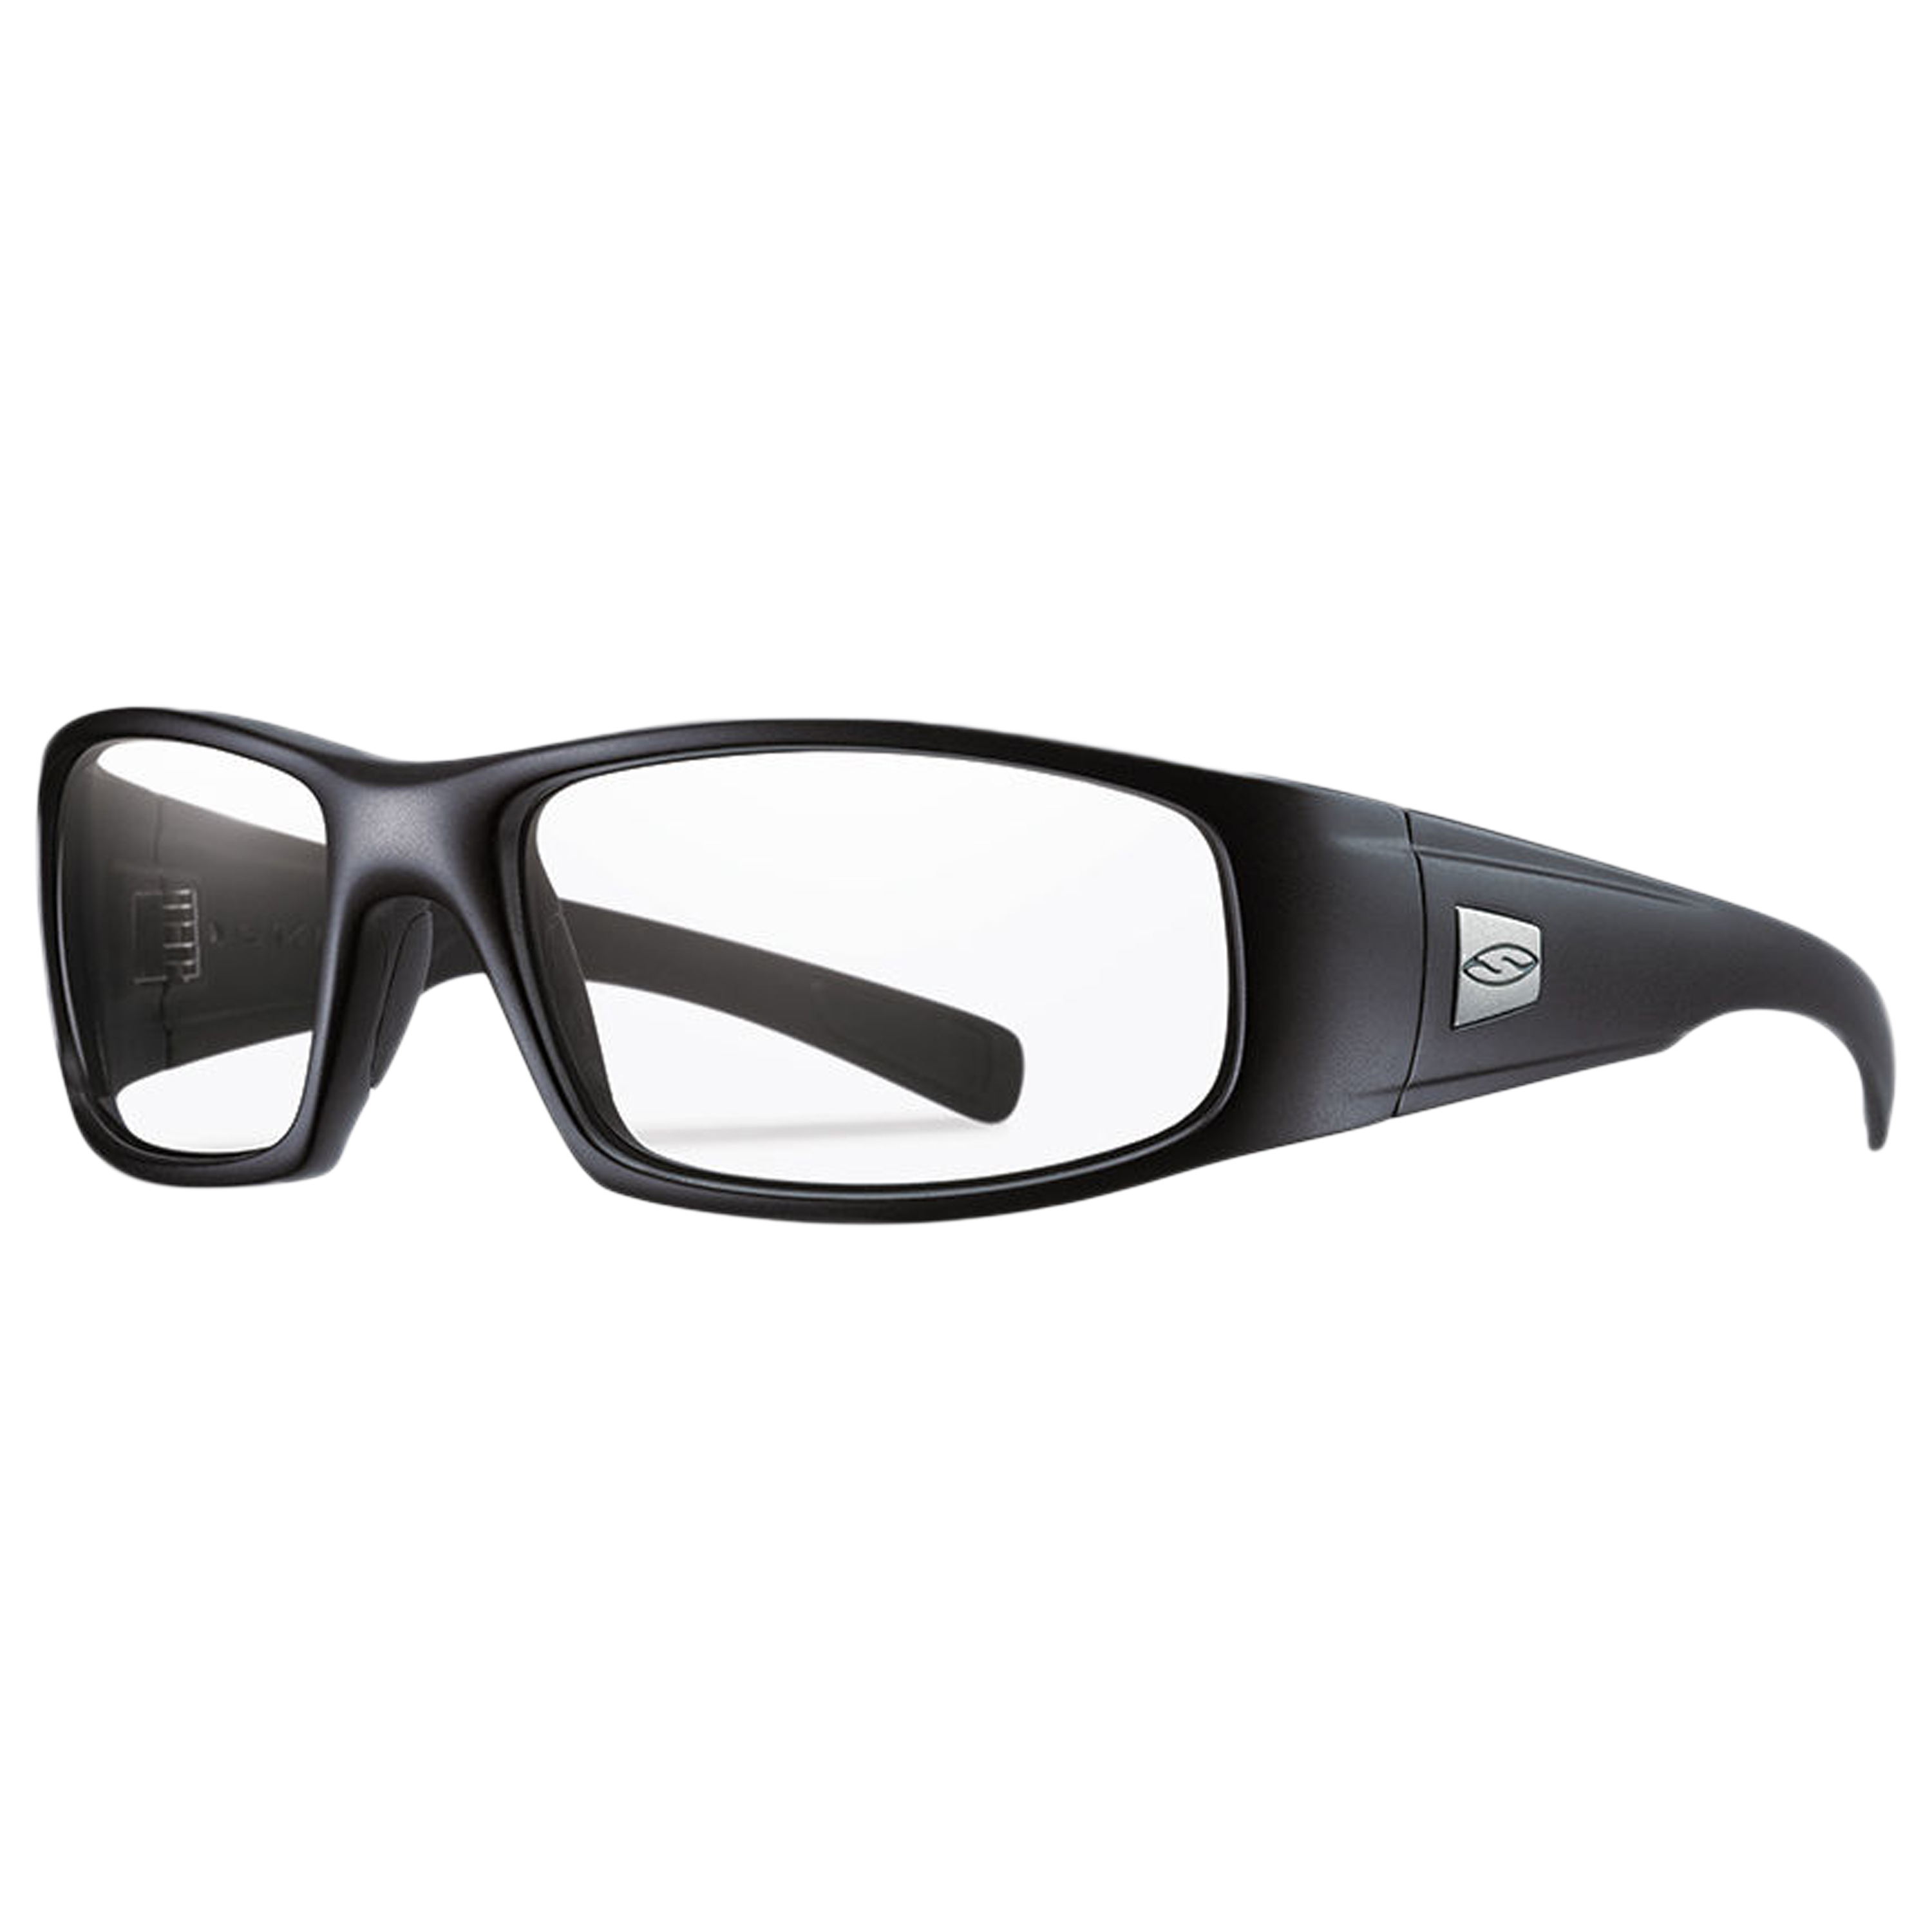 Smith Optics Glasses Hideout Elite black/ clear